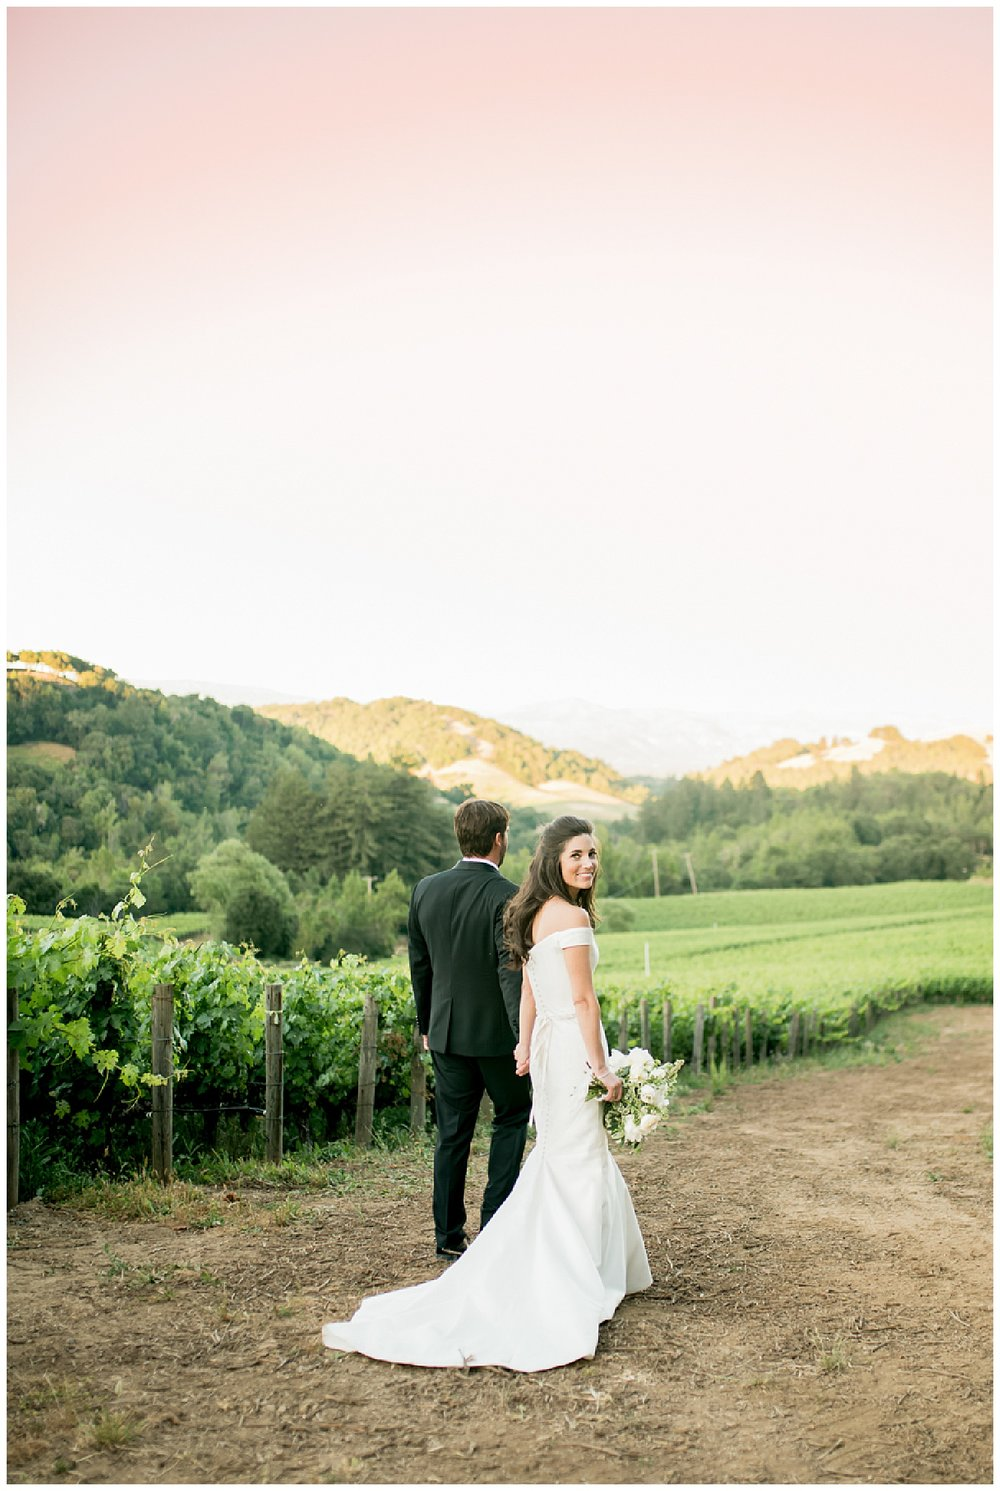 Janine_Licare_Photography_San_Francisco_Wedding_Photographer_0149.jpg